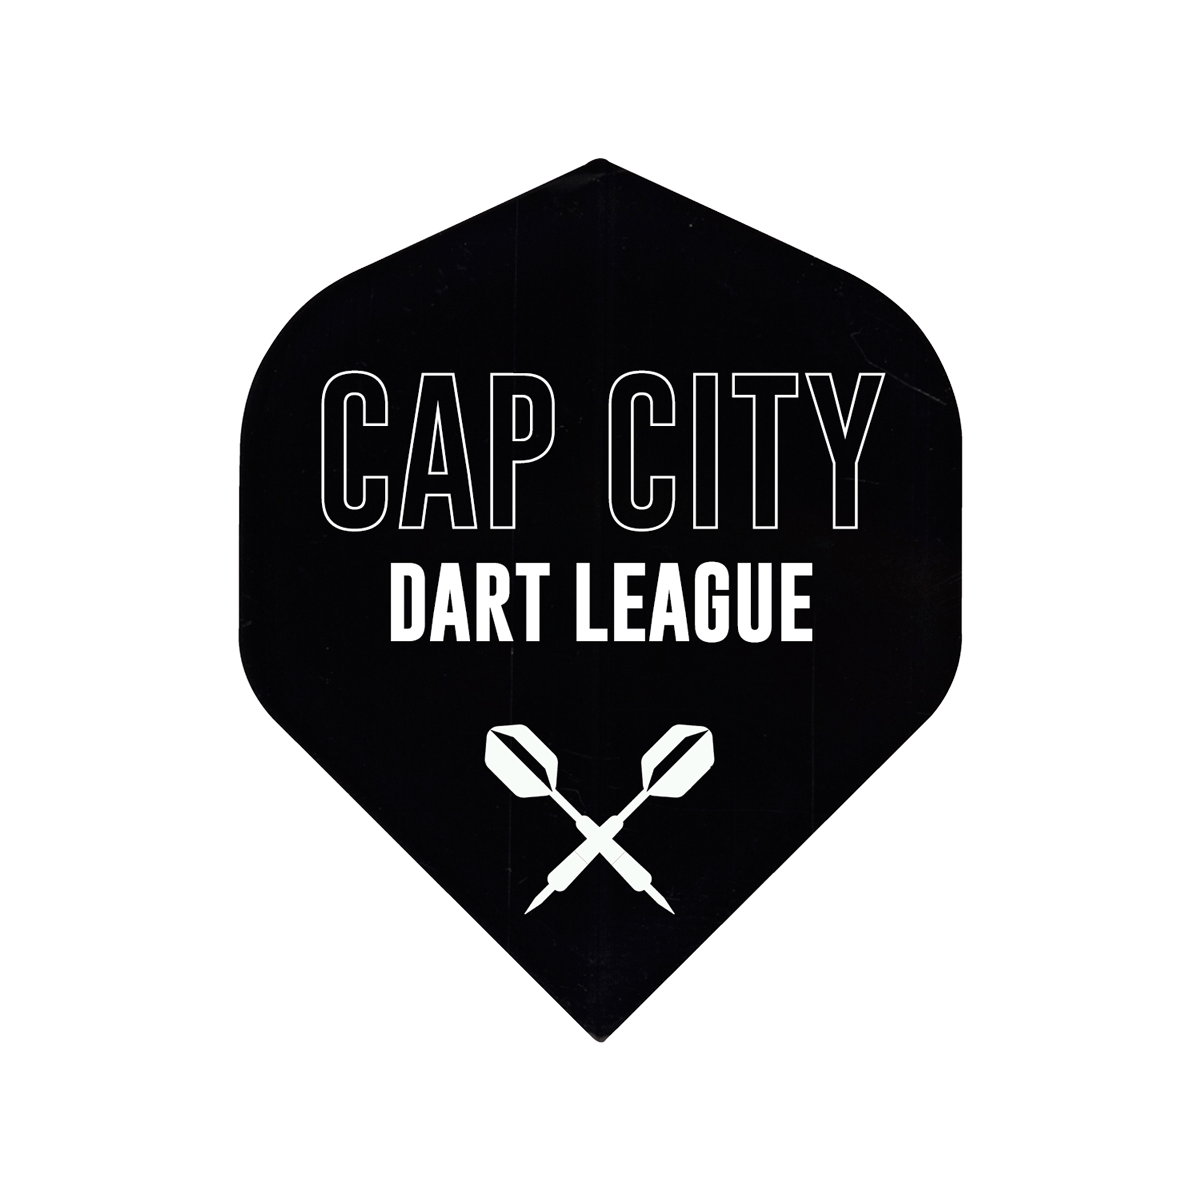 CAP CITY DARTS